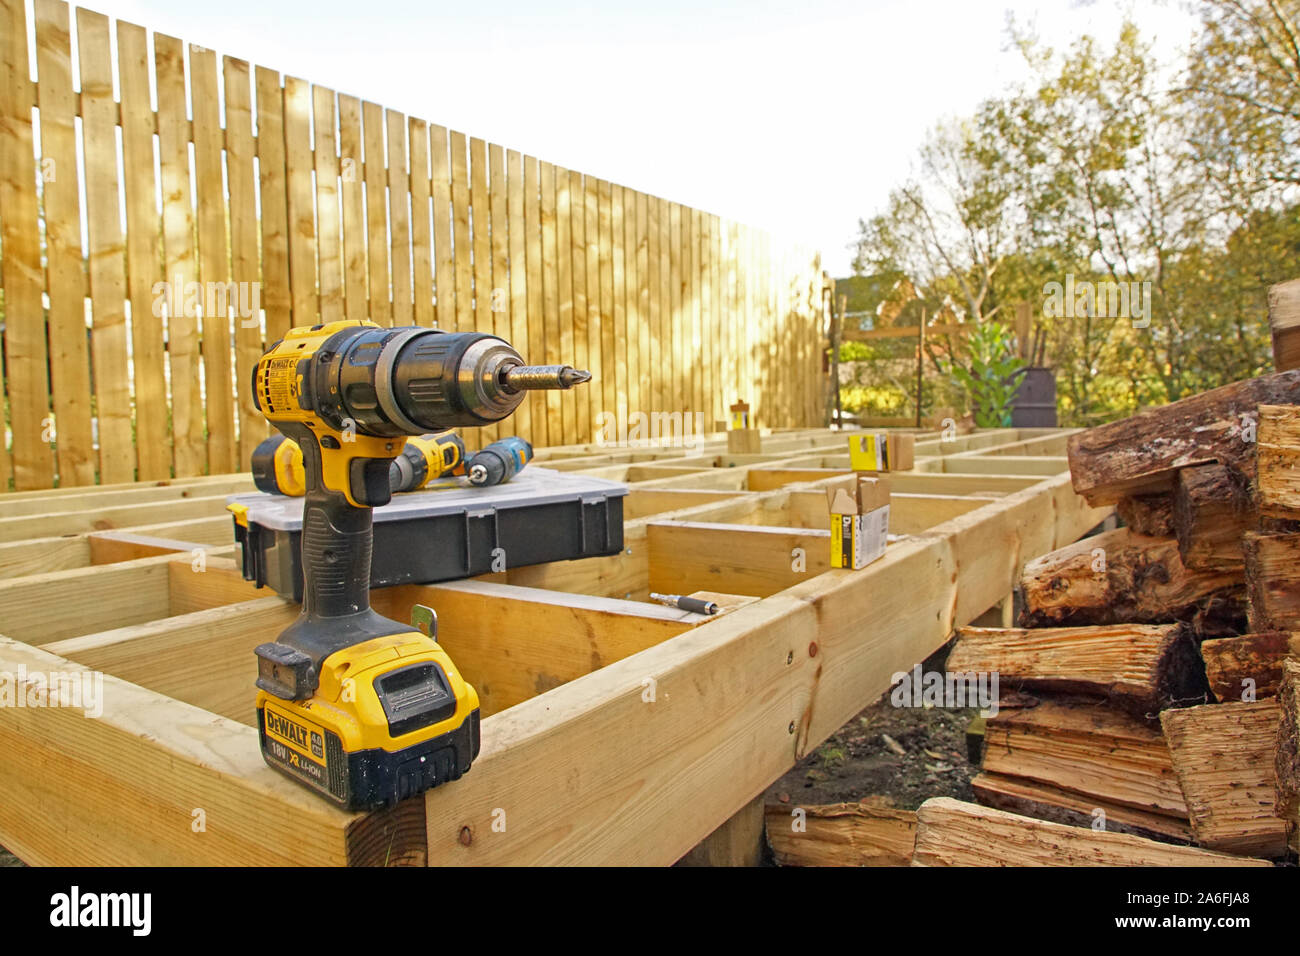 DeWalt Drill on a Frame from Raised Deck in Garden, DIY, Do It Yourself, Gardening, Garden Work Stock Photo